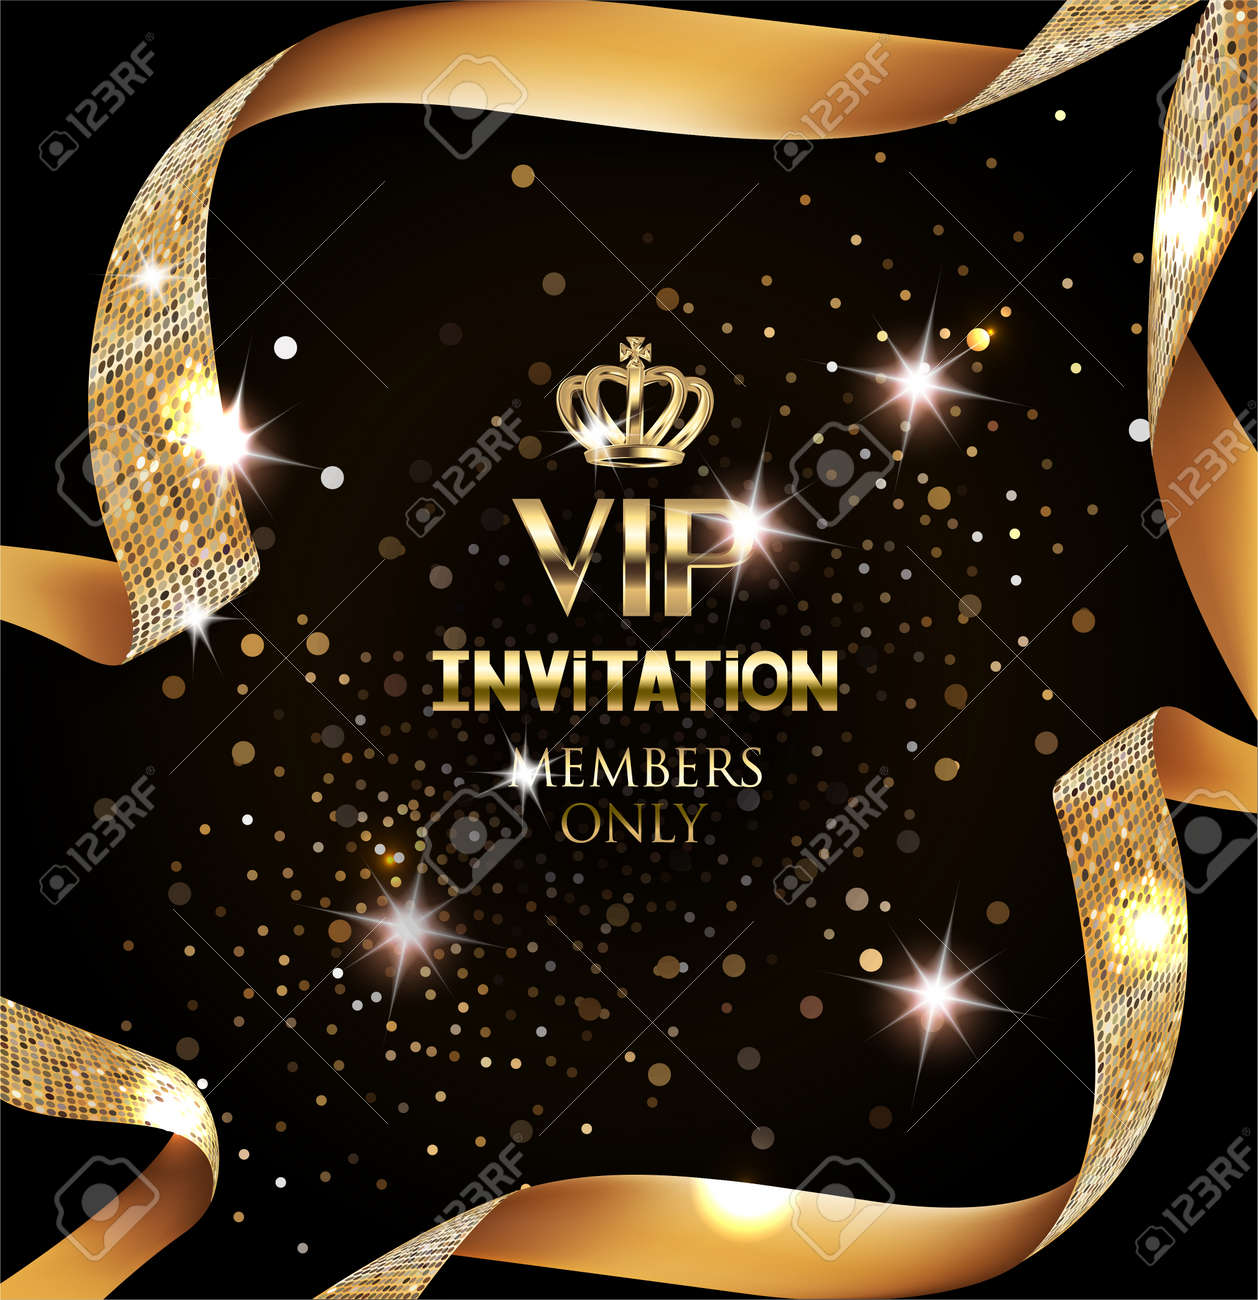 Elegant VIP invitation card with silk textured curled gold ribbon - 66680326